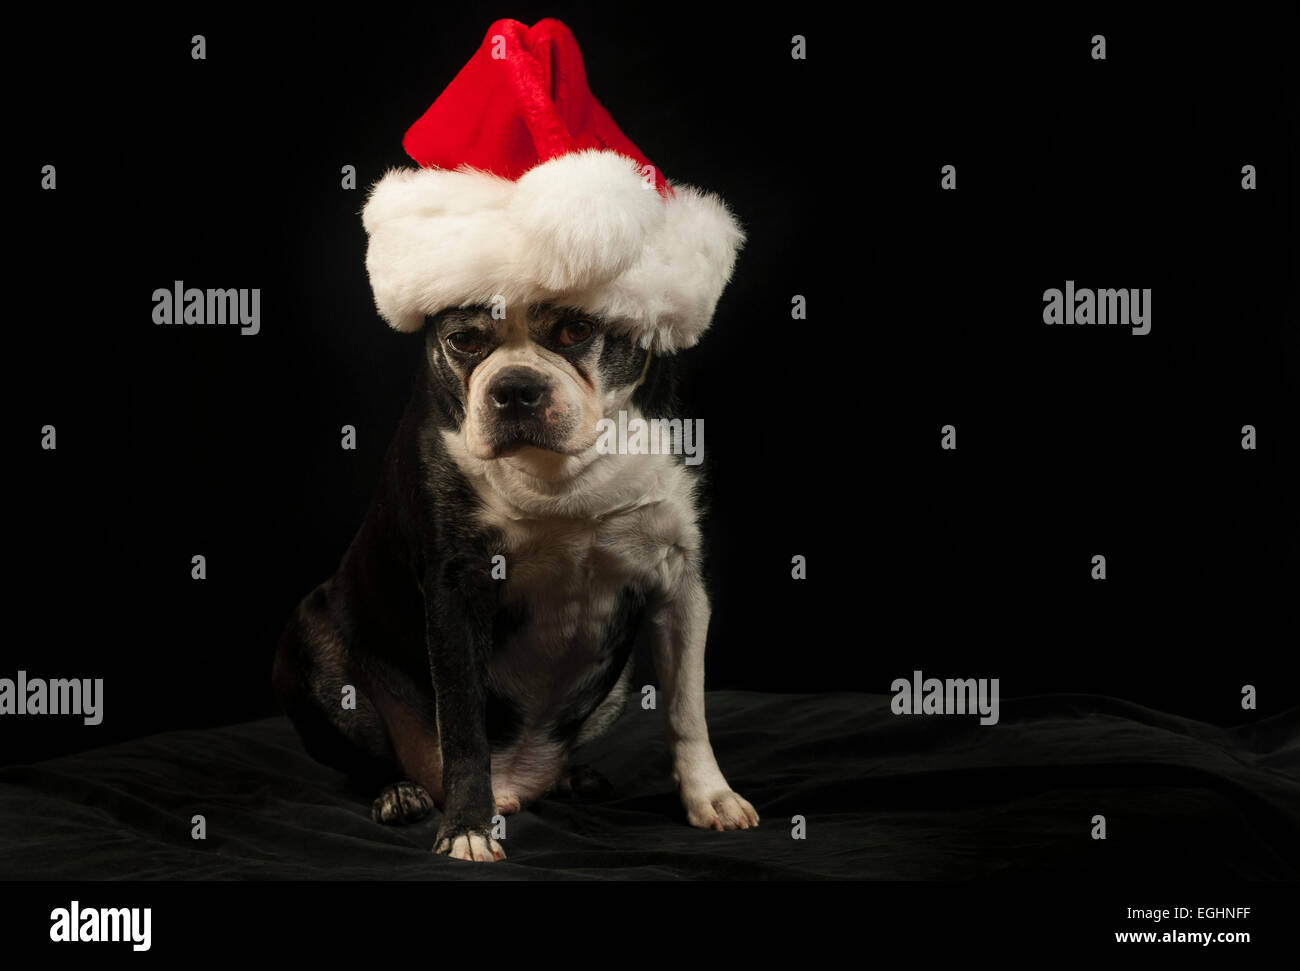 Christmas with a Boston Terrier - Stock Image